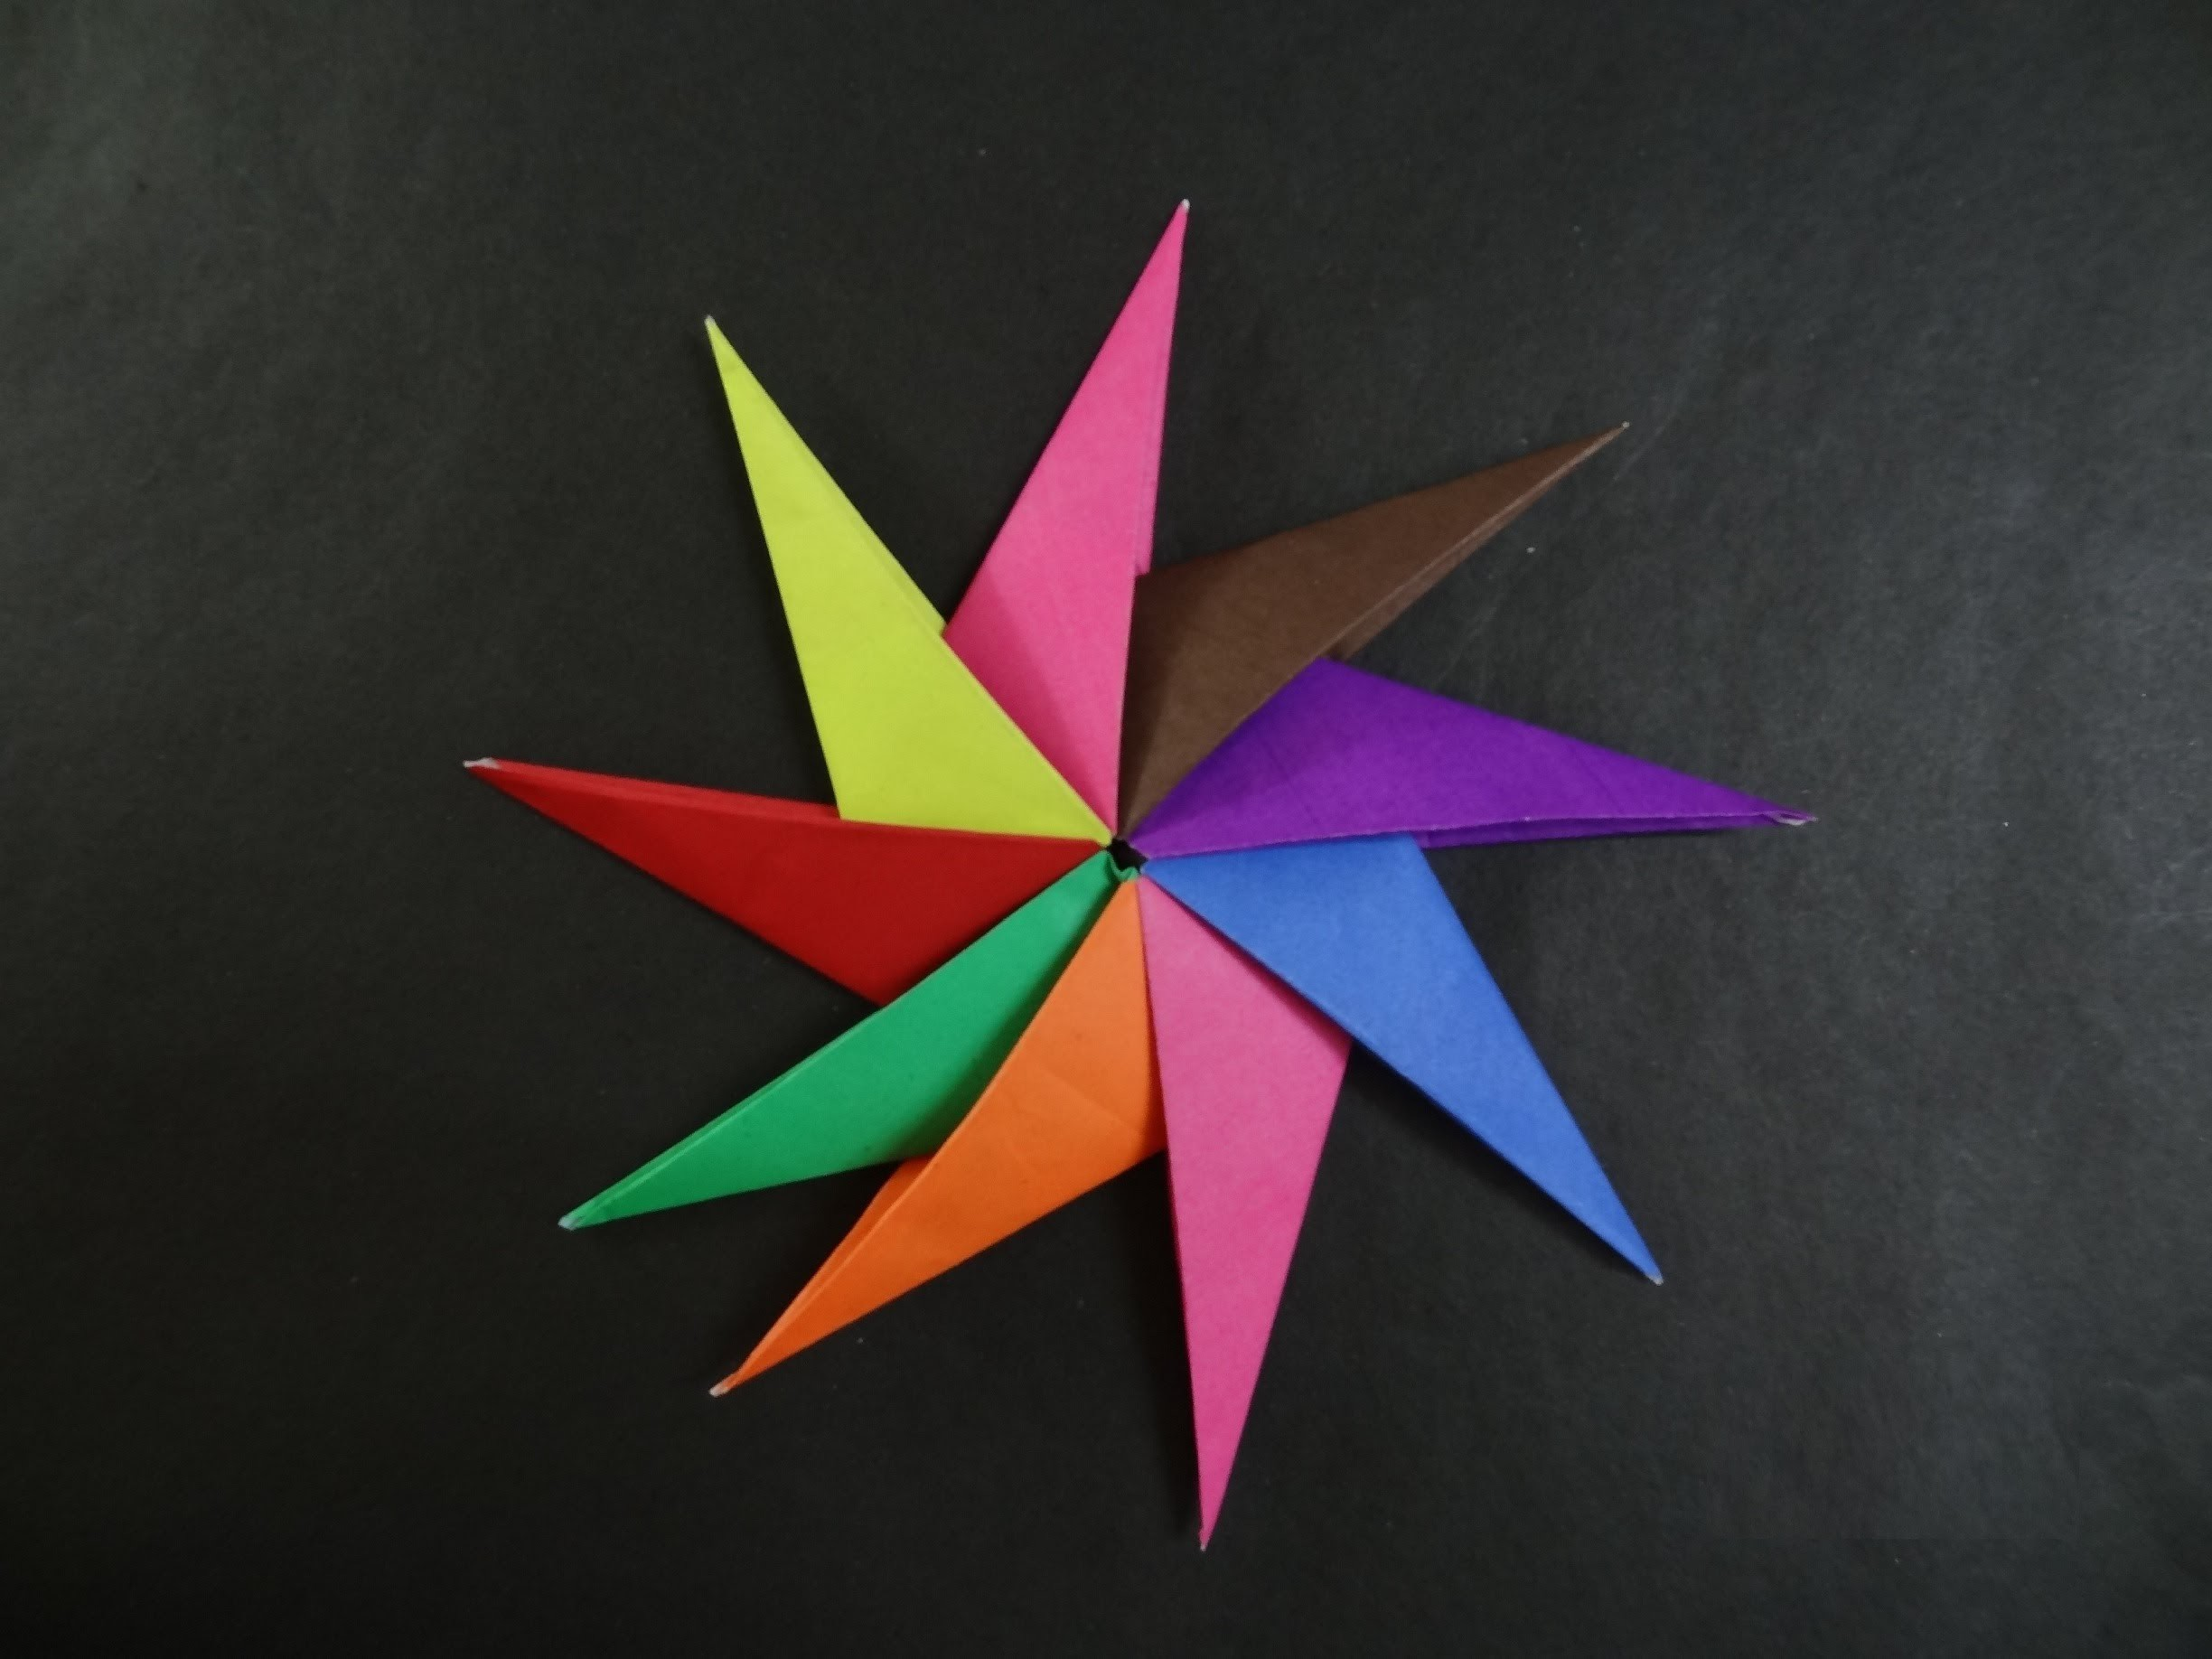 Origami Star Tutorial - How to fold an Origami Spinning Star